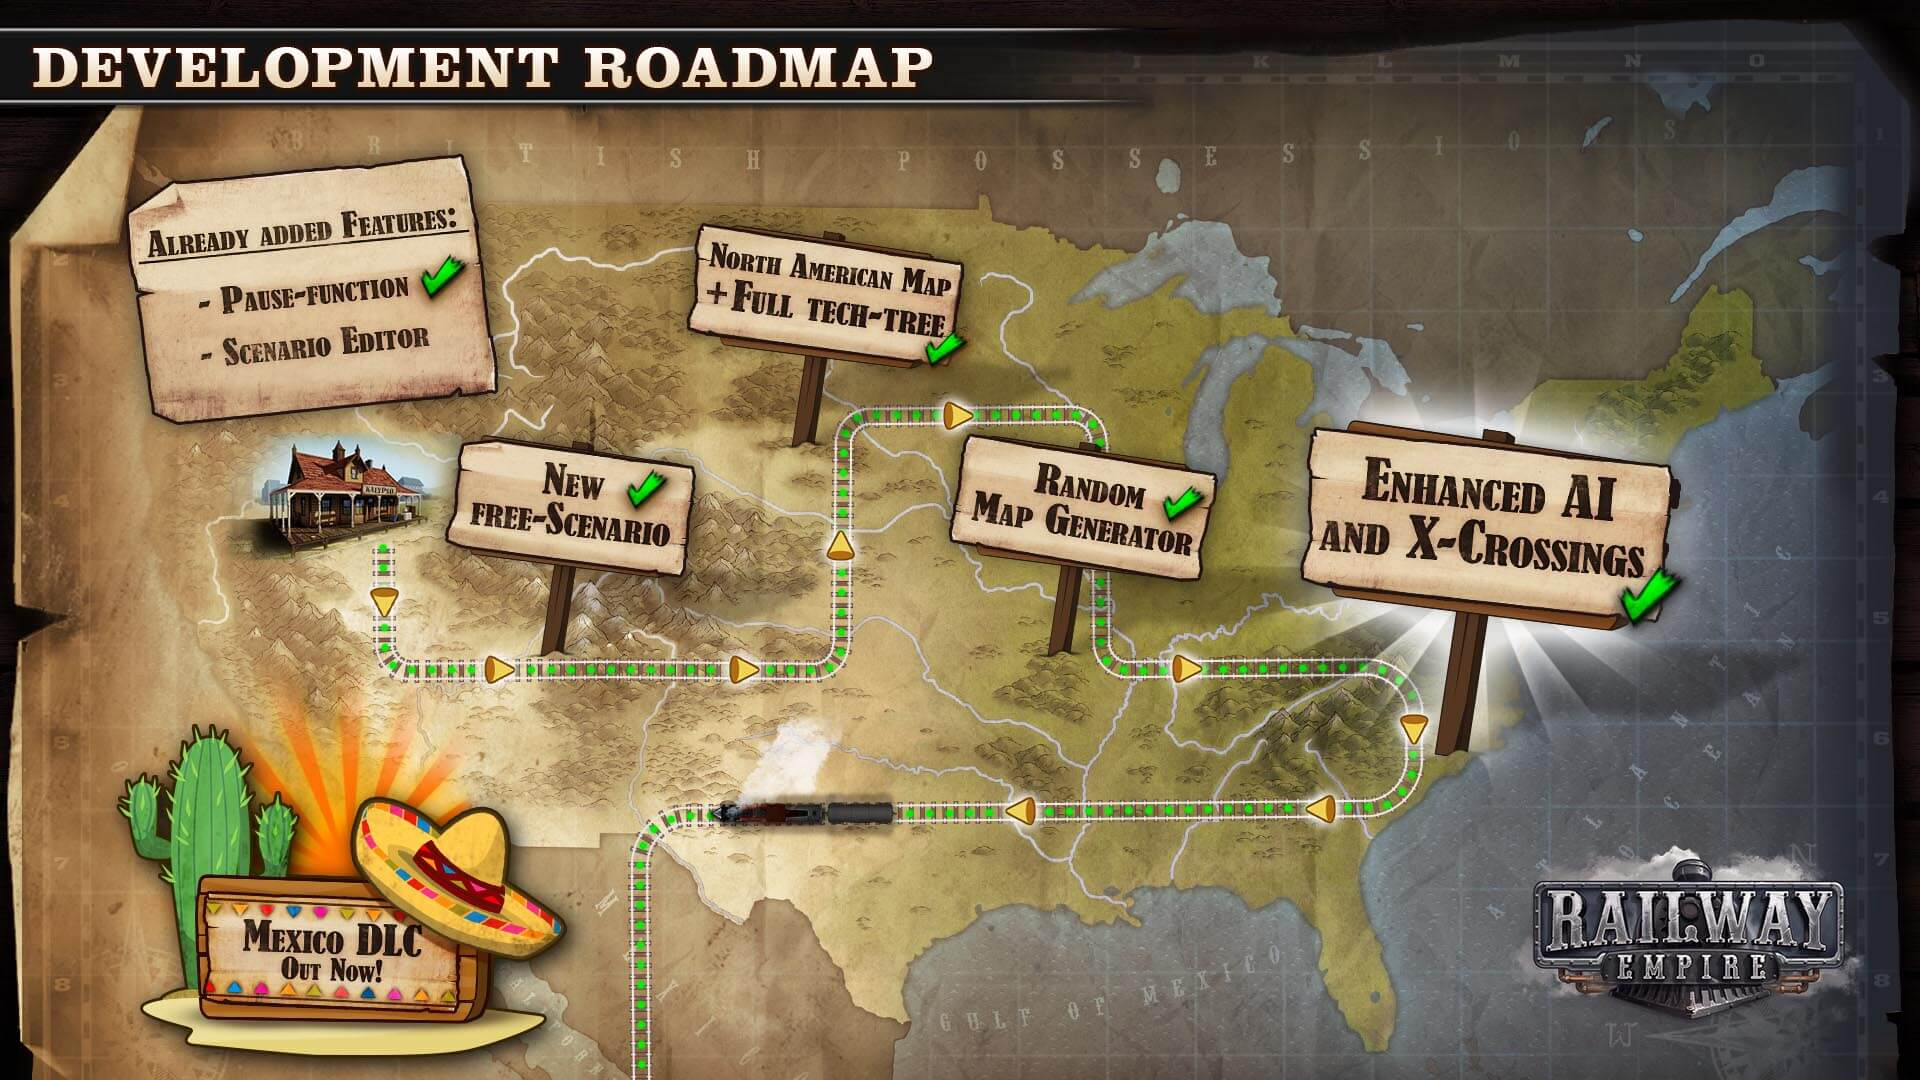 RailwayEmpire_Roadmap_4